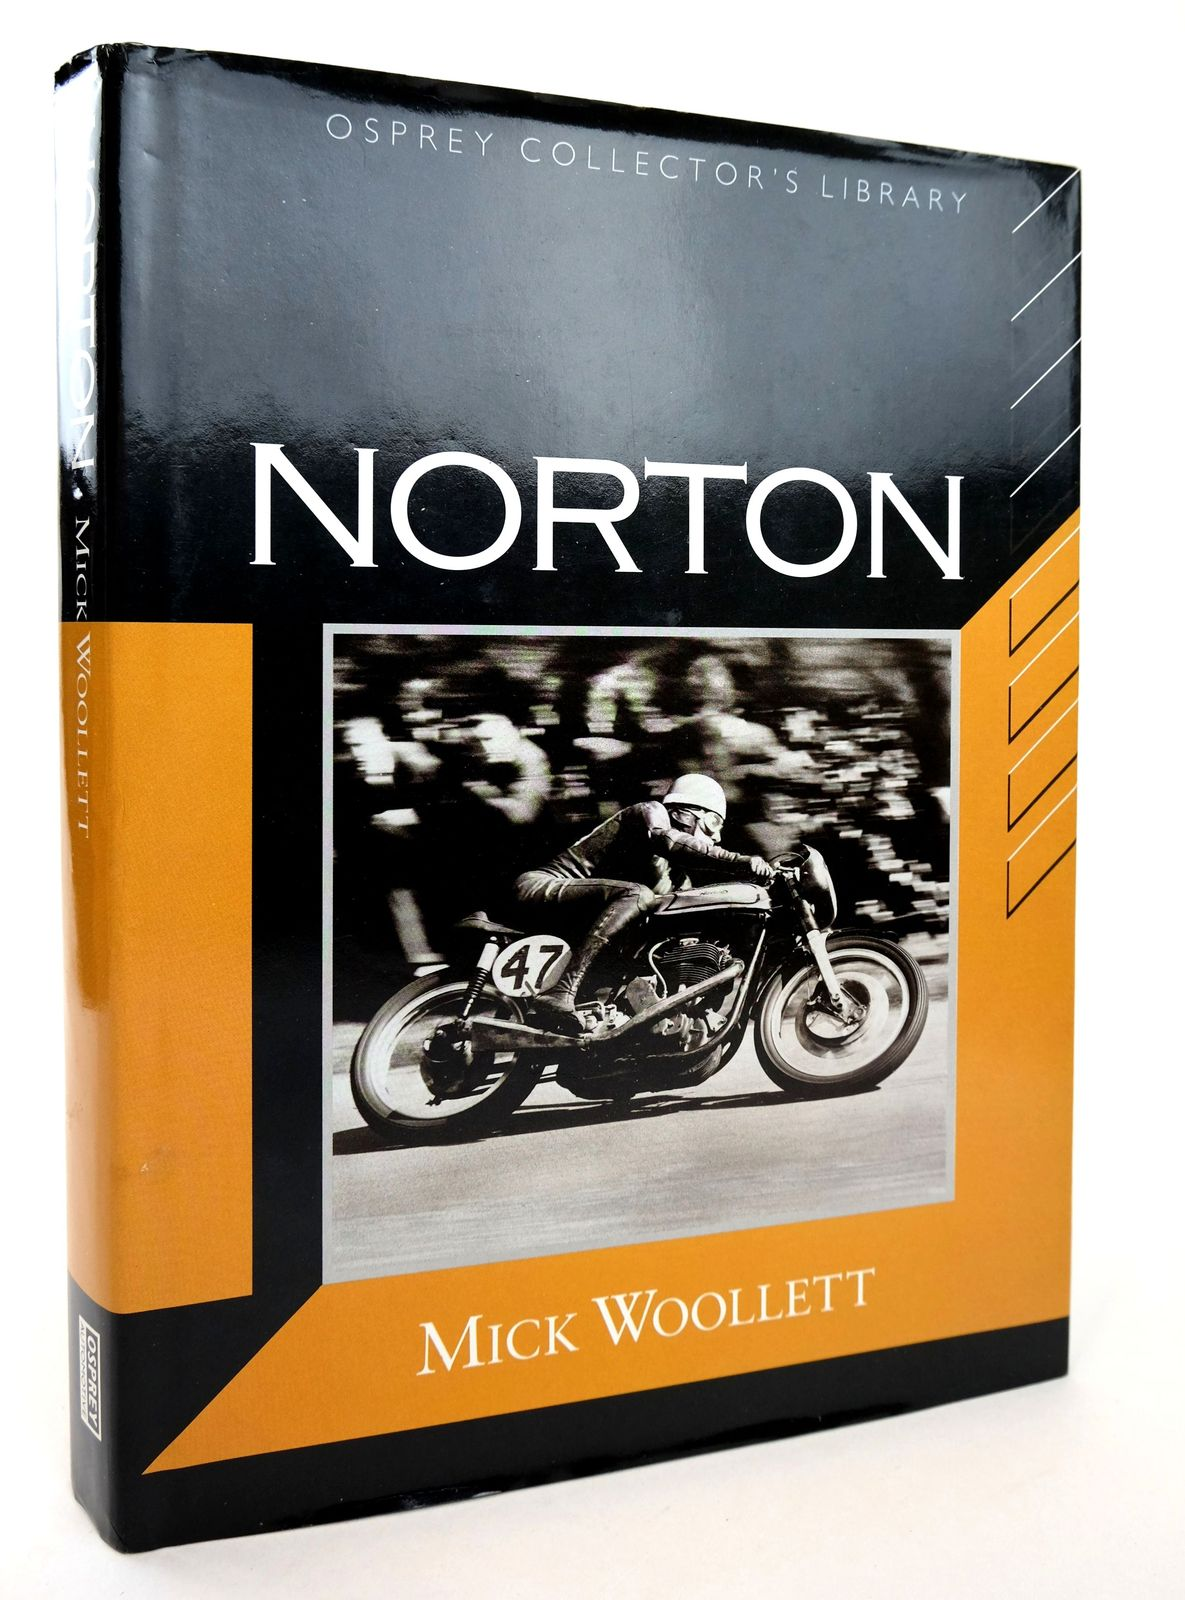 Photo of NORTON (OSPREY COLLECTOR'S LIBRARY) written by Woollett, Mick published by Osprey Automotive (STOCK CODE: 1818781)  for sale by Stella & Rose's Books